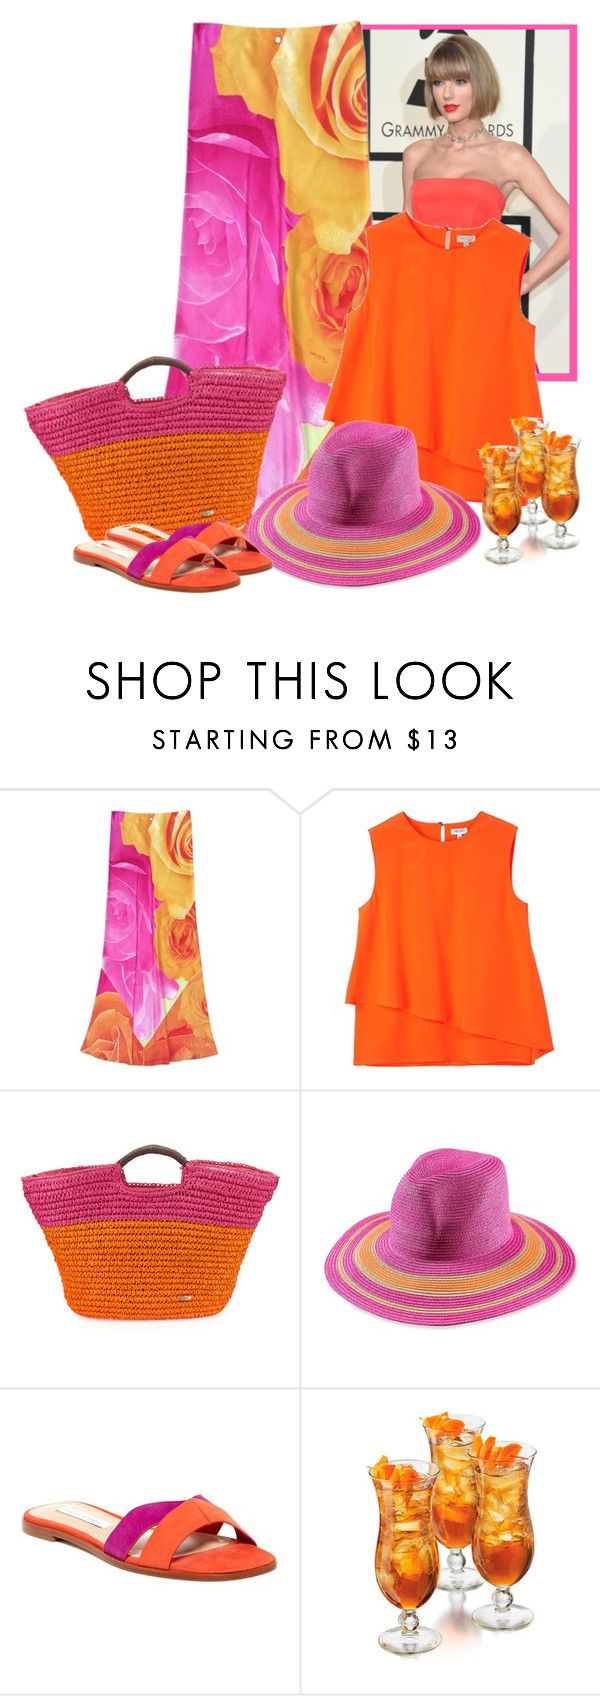 """""""SAME SHOES AND HAT"""" by bodangela ❤ liked on Polyvore featuring Roberto Cavalli, Kenzo, Cappelli, T+C by Theodora & Callum and Diane Von Furstenberg"""